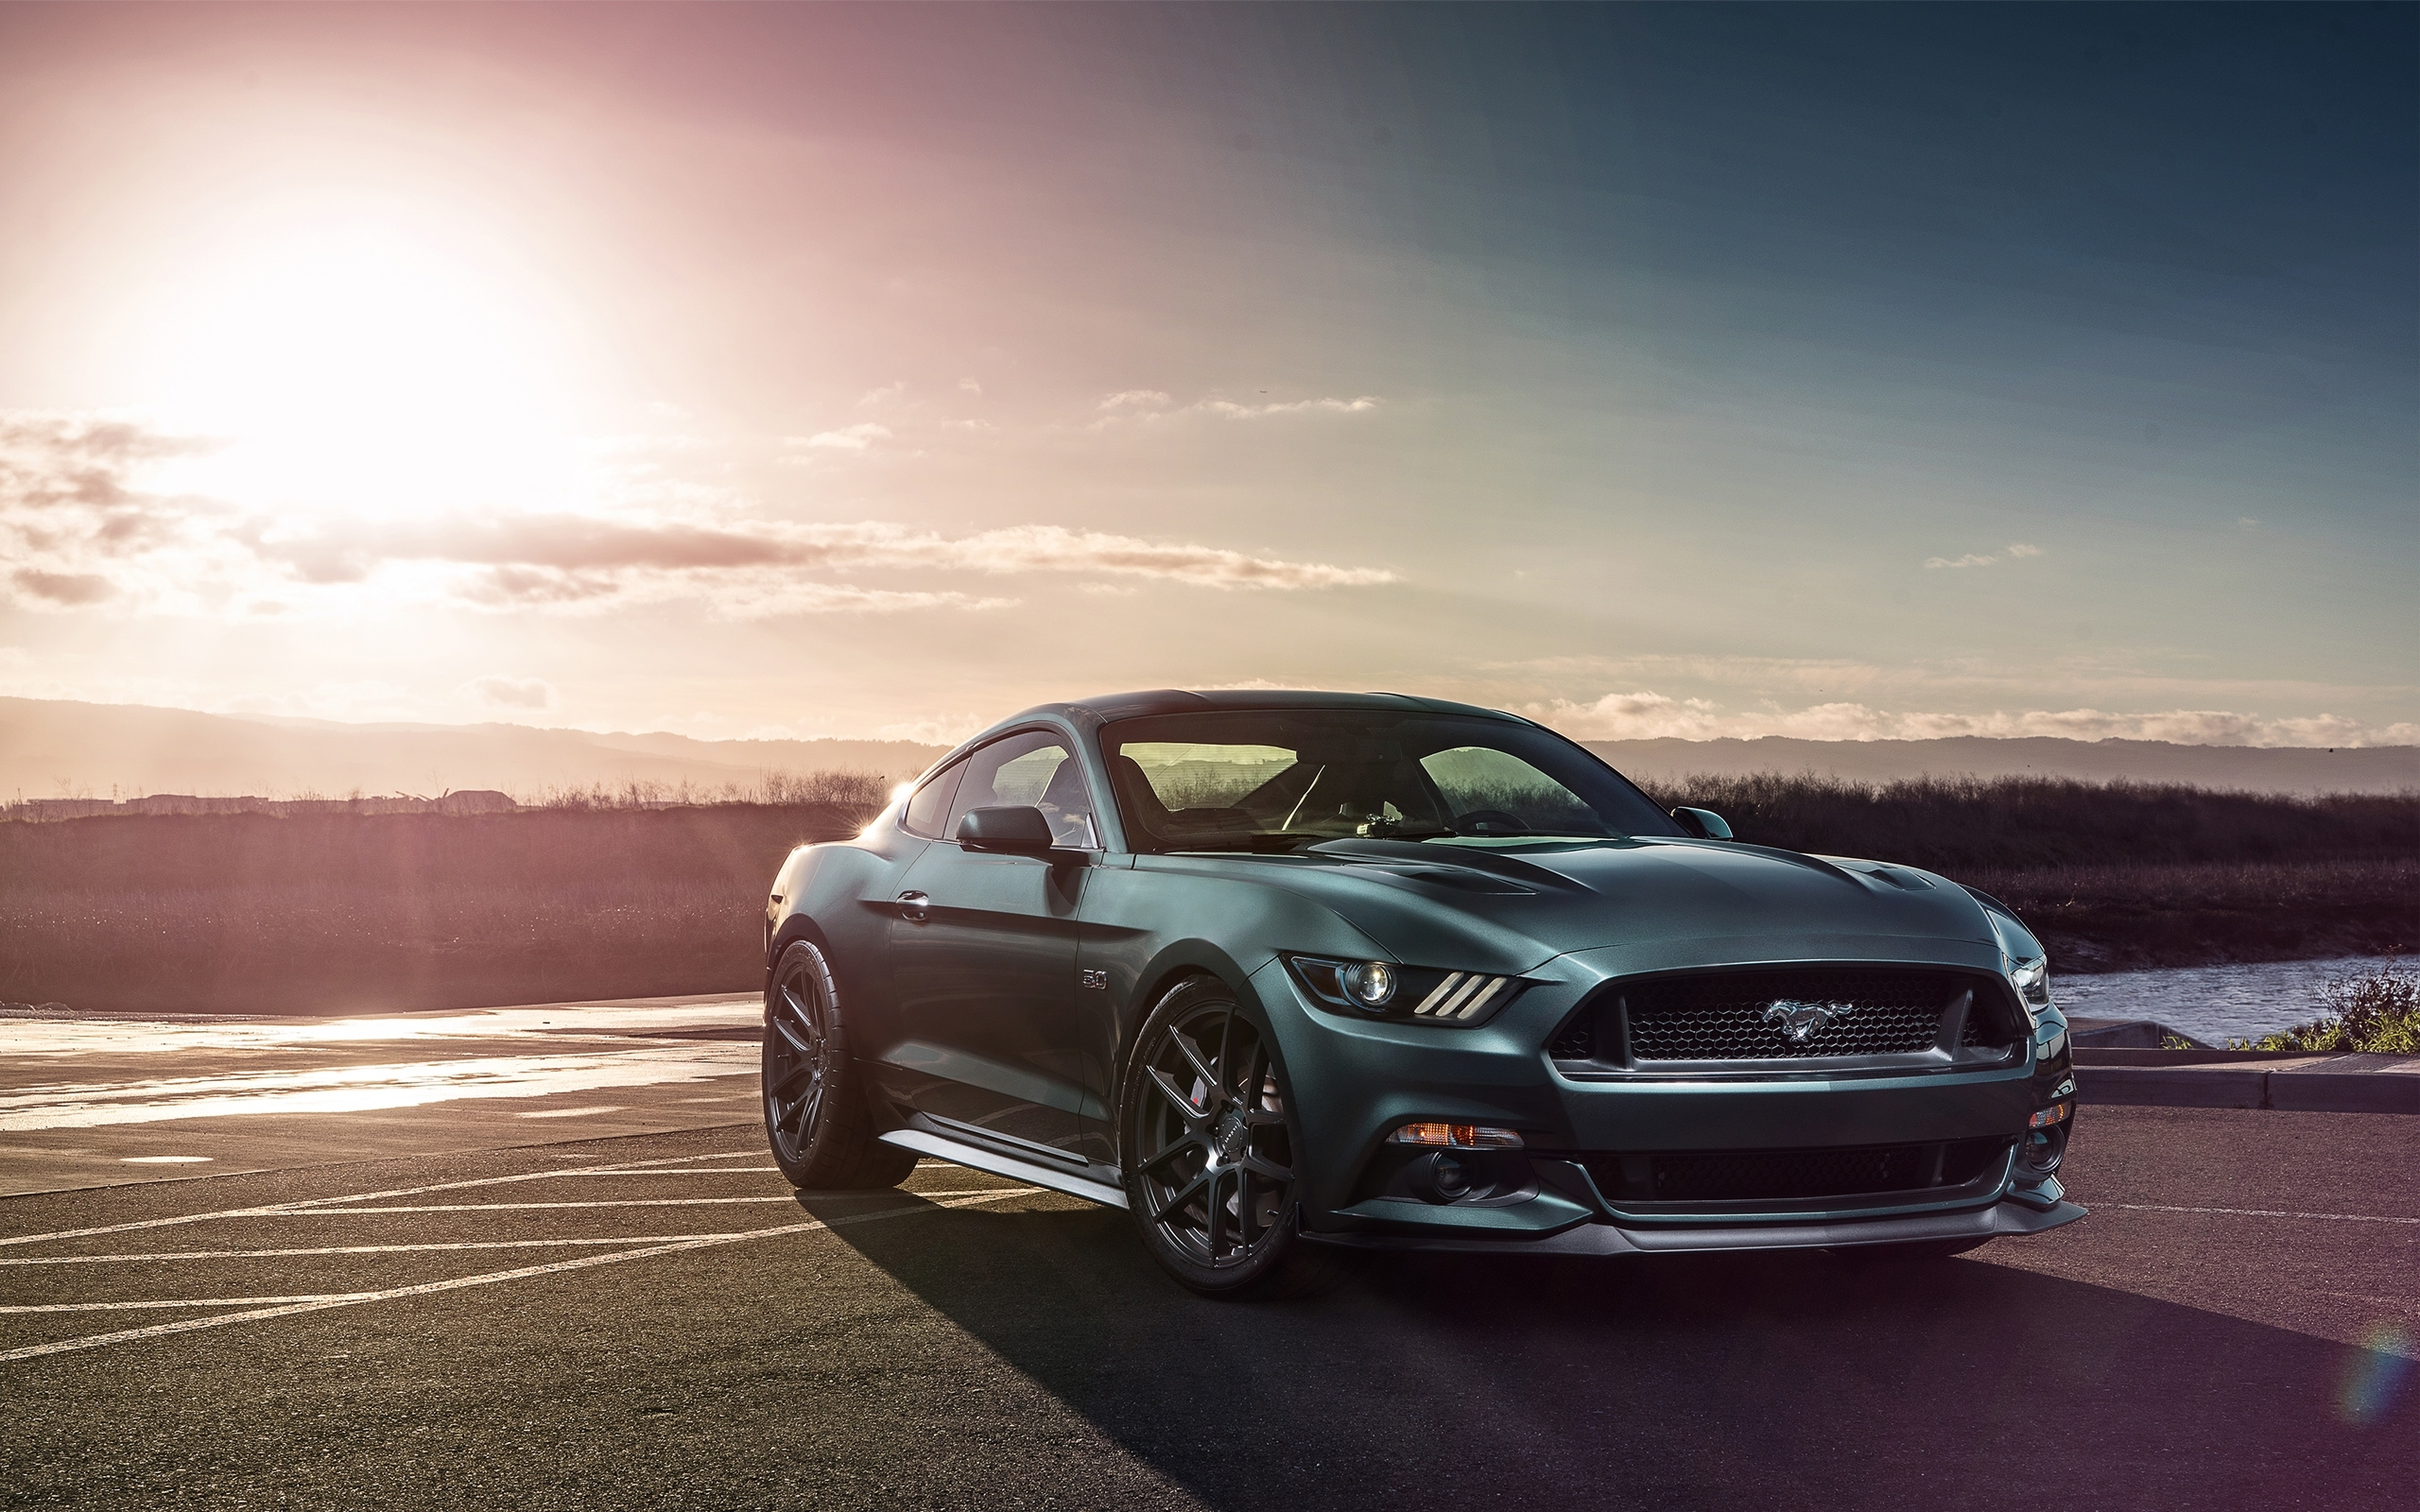 cars ford mustang gt 5k wallpapers (desktop, phone, tablet